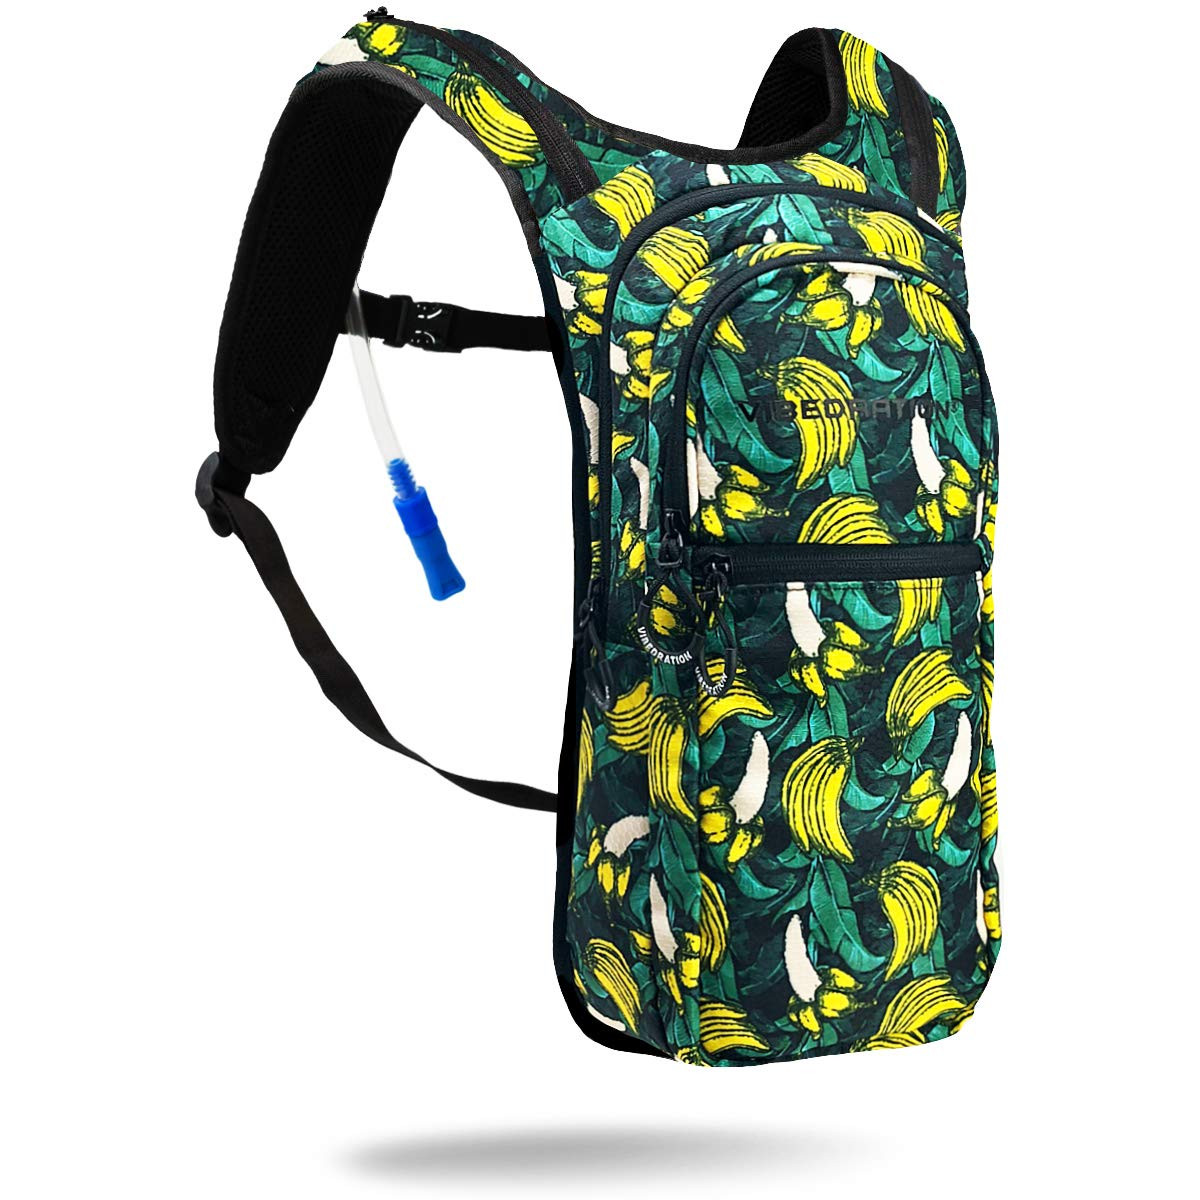 Vibedration VIP 2 Liter Hydration Pack | Festival Rave Hydration, Hiking Camping Backpack (Banana Jungle) by Vibedration (Image #1)